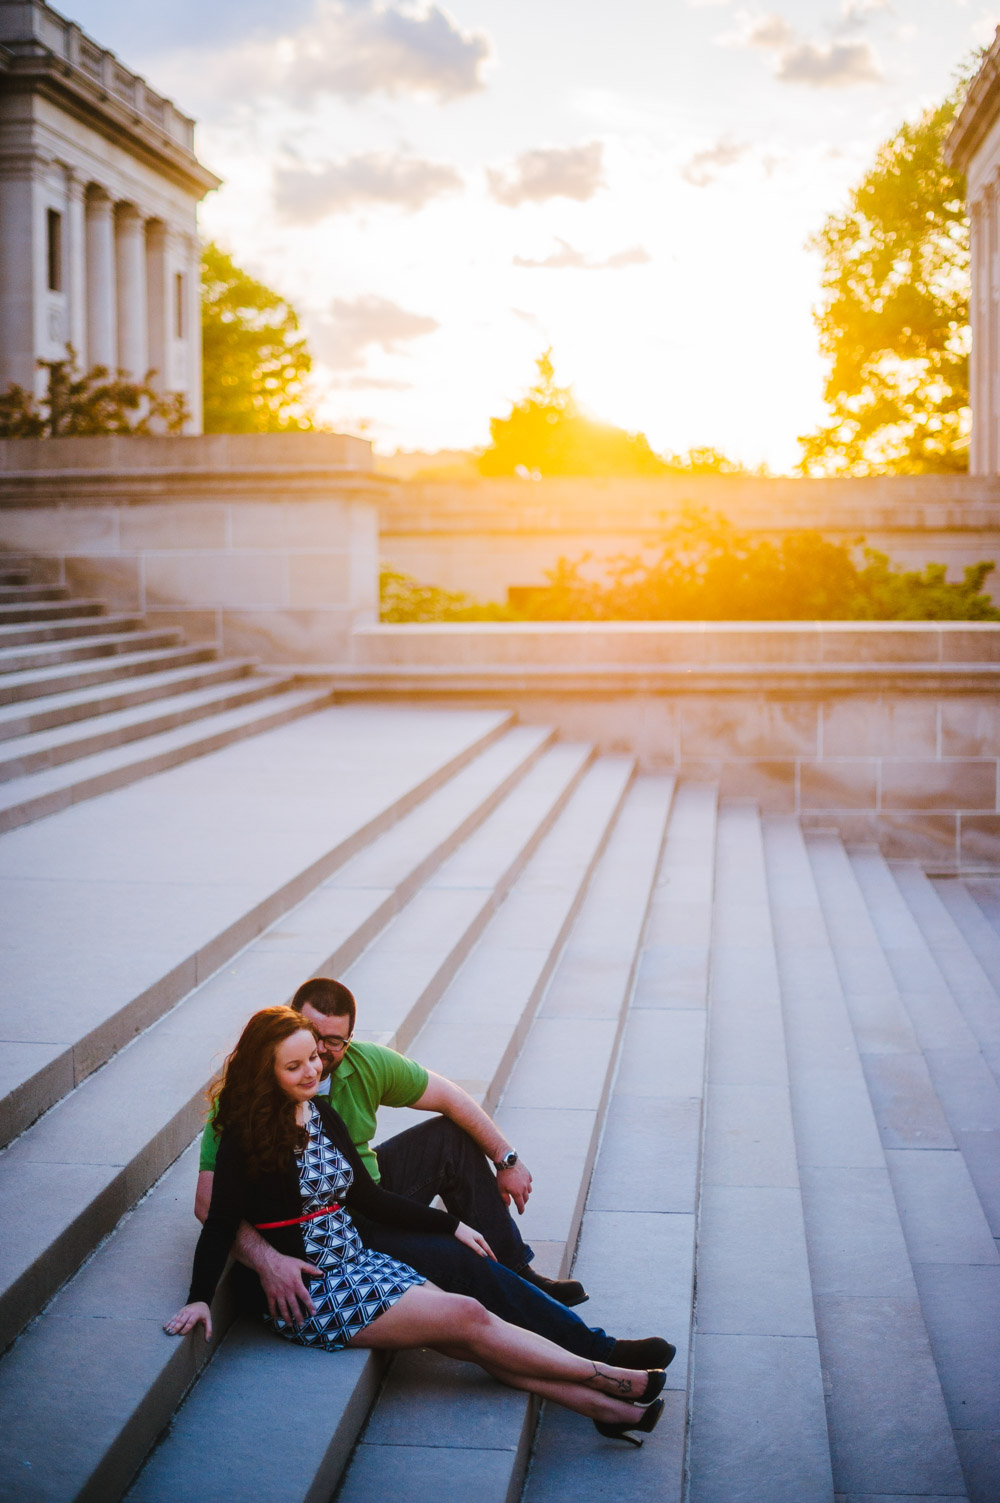 charleston wv family newborn engagement portrait photography